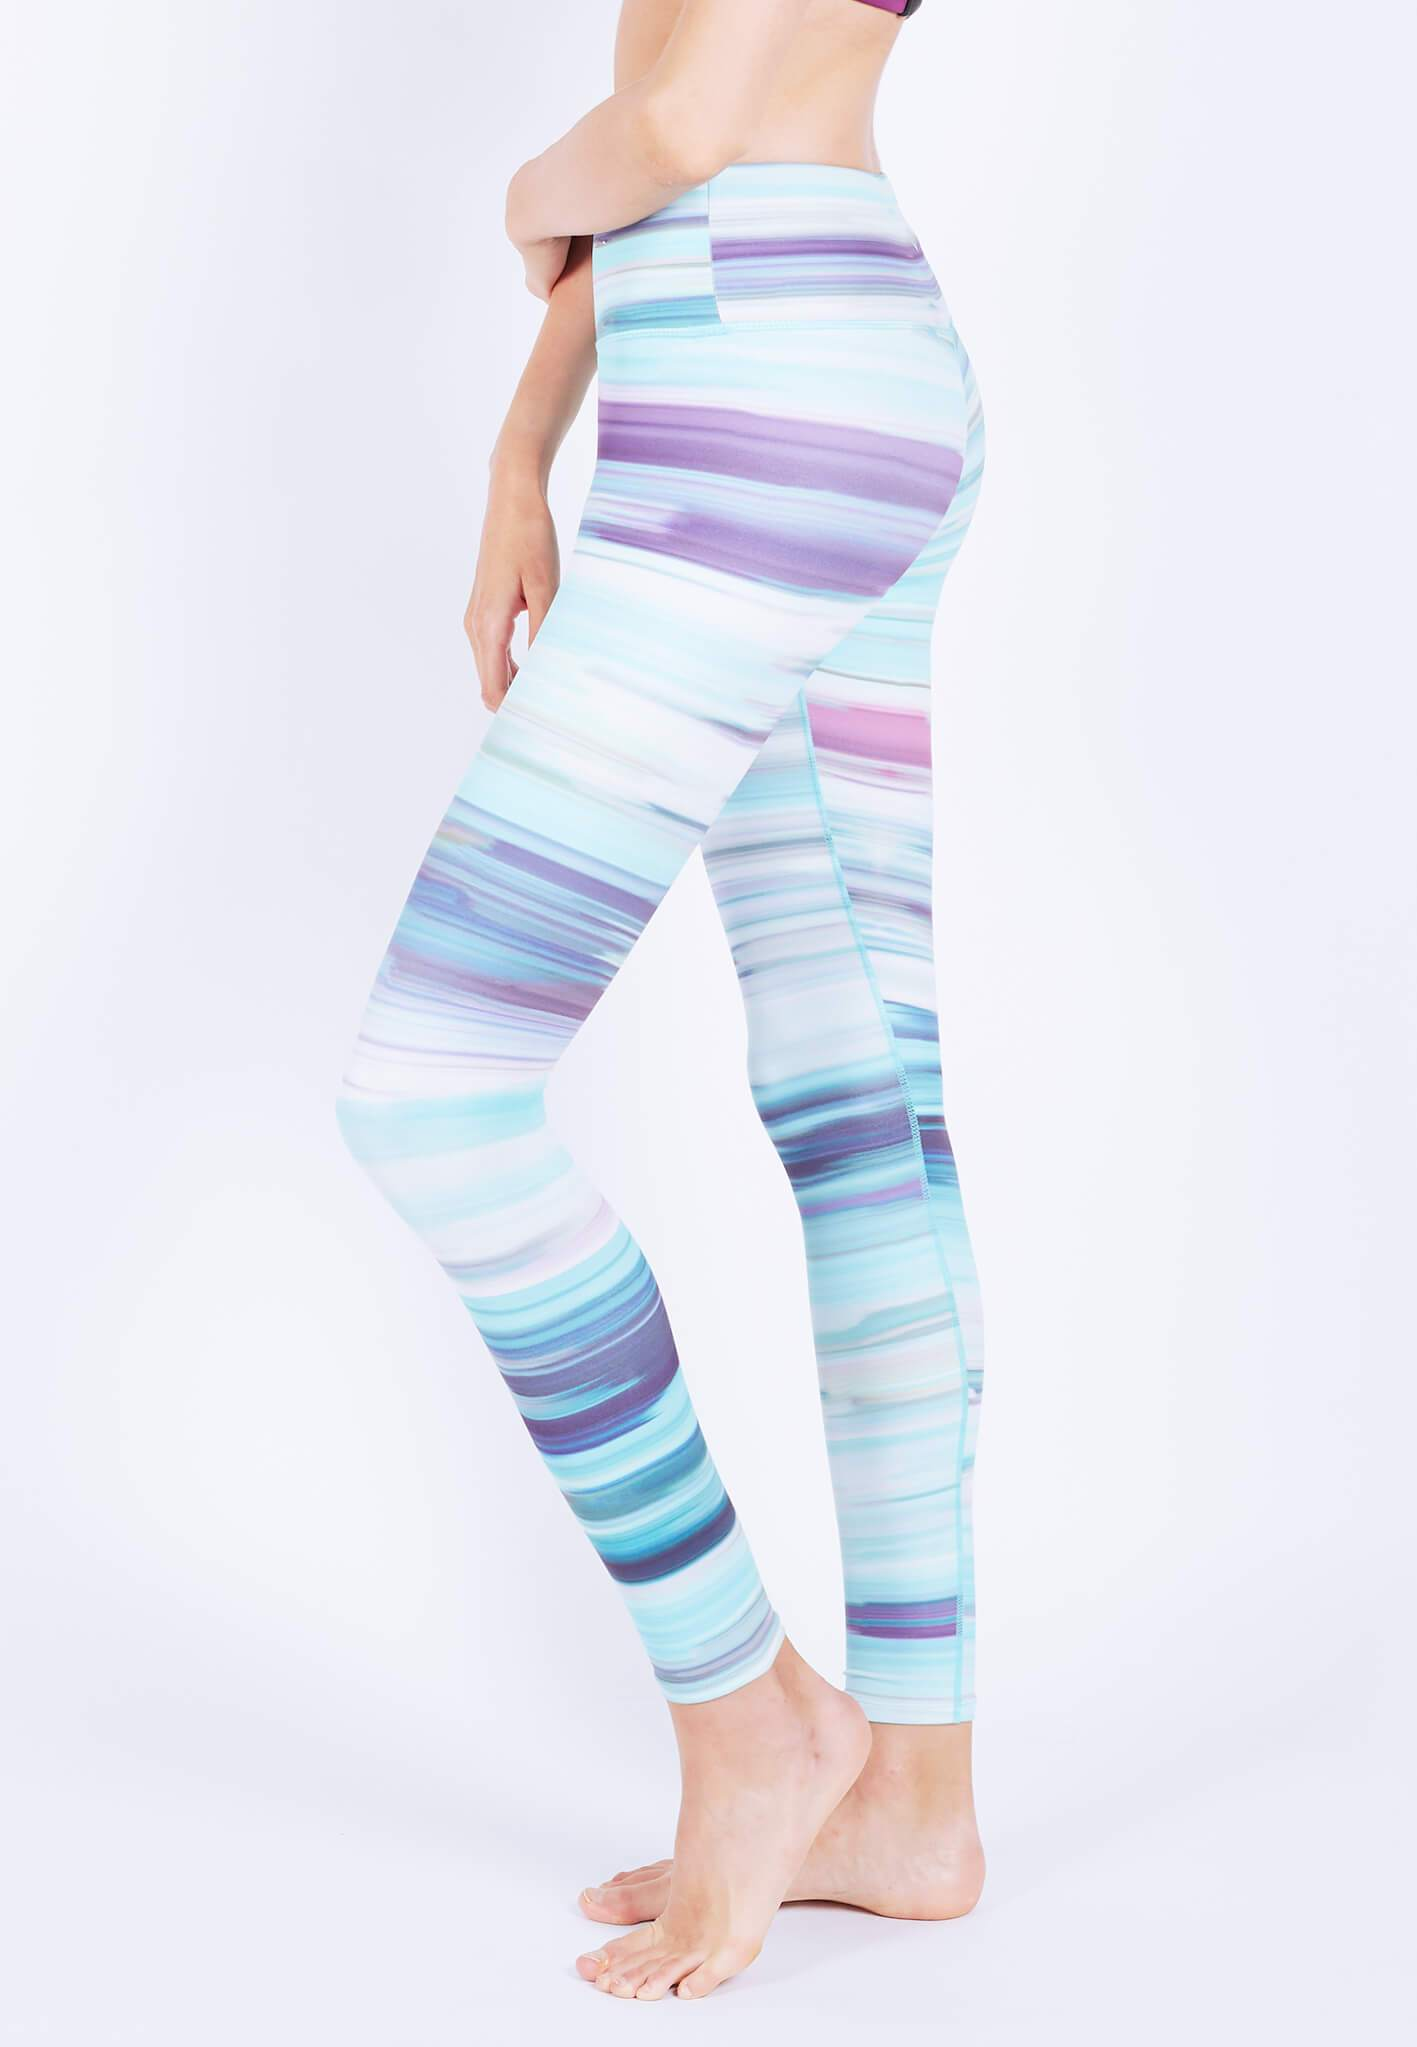 INTENSITY Leggings (with Keeperband®) in Iridescence Print (XS - 2XL)